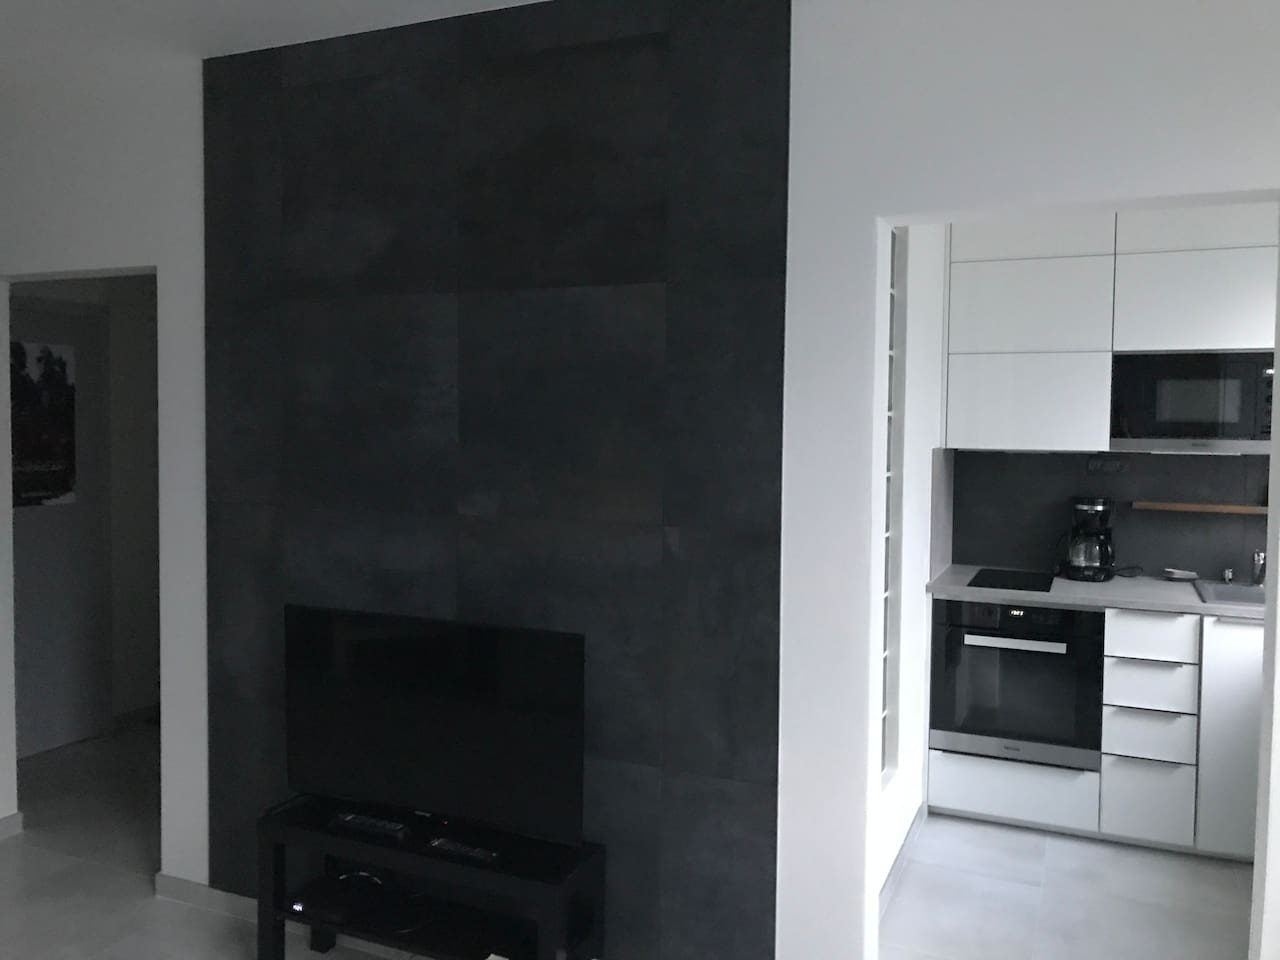 Fantastic  studio with top brand appliances, close to downtown and walking distance to Chateau Troja & ZOO . It will take you about 25 minutes to downtown by public transport or about 15 minutes by car/ Uber.